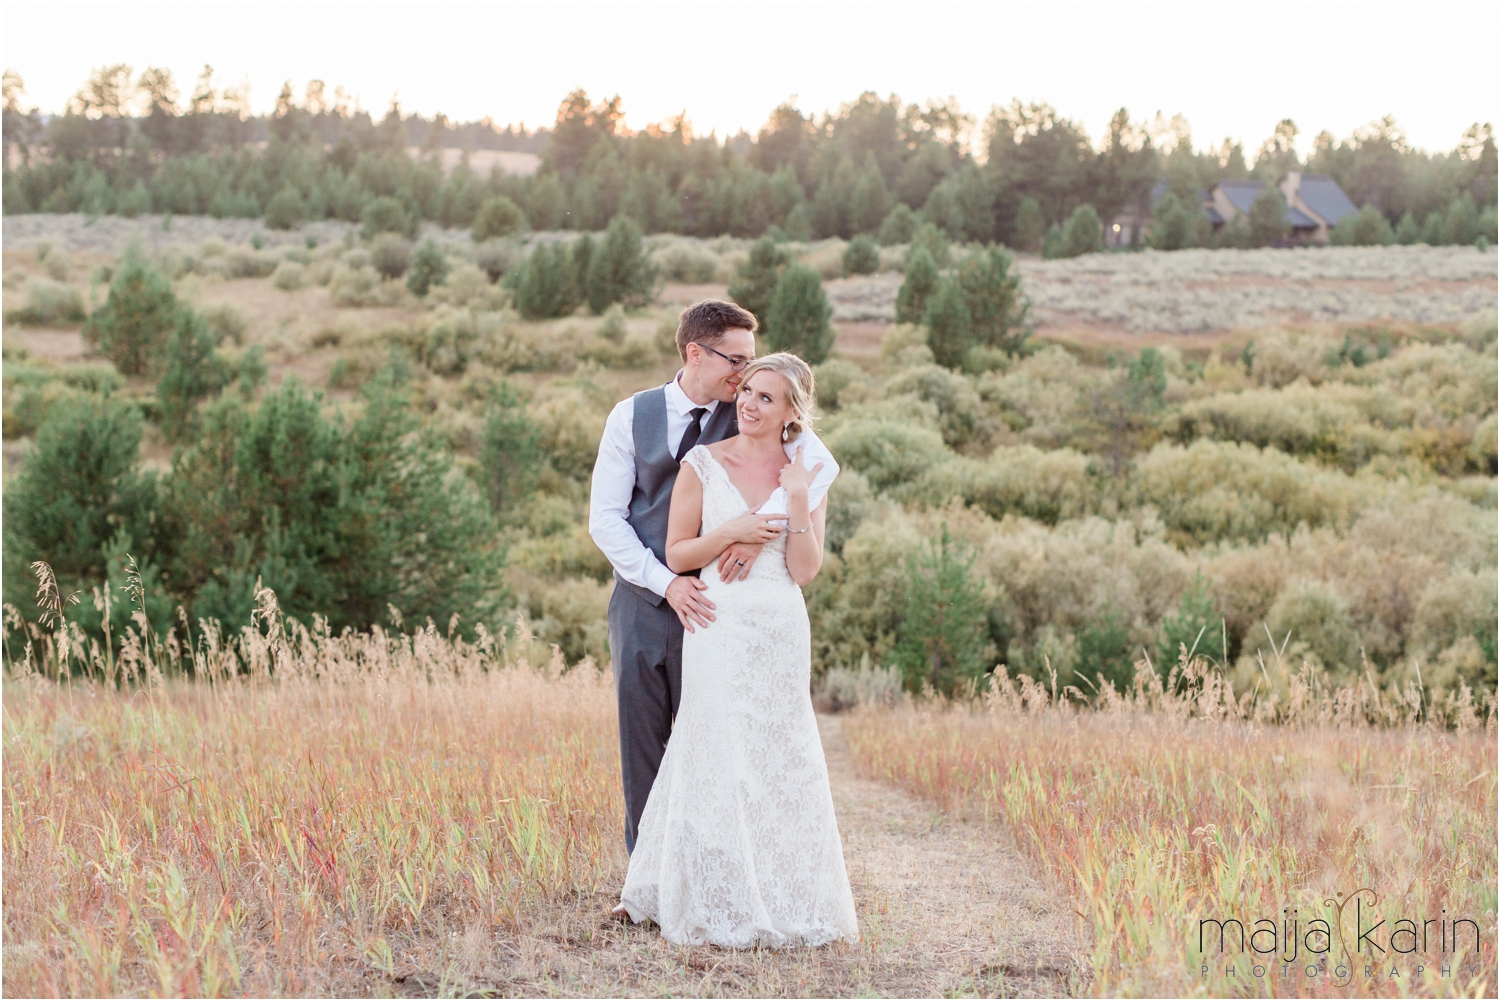 McCall-Idaho-Wedding-Maija-Karin-Photography_0086.jpg